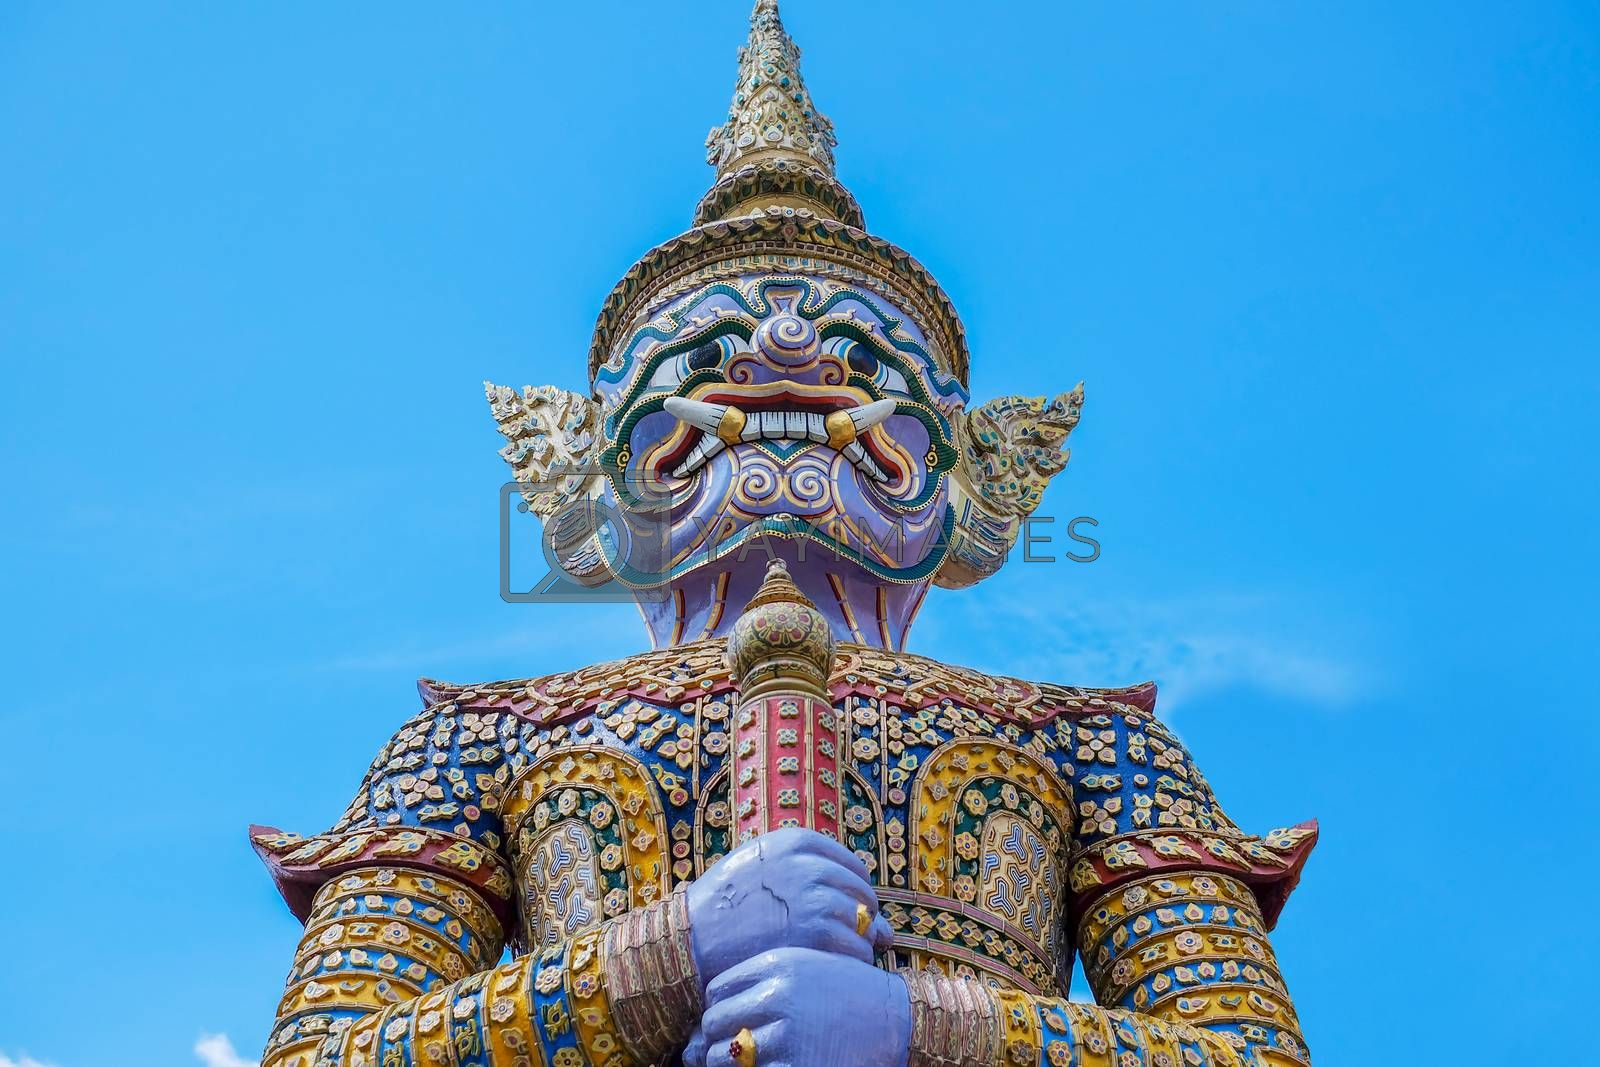 Purple Giant in Thailand on Blue sky